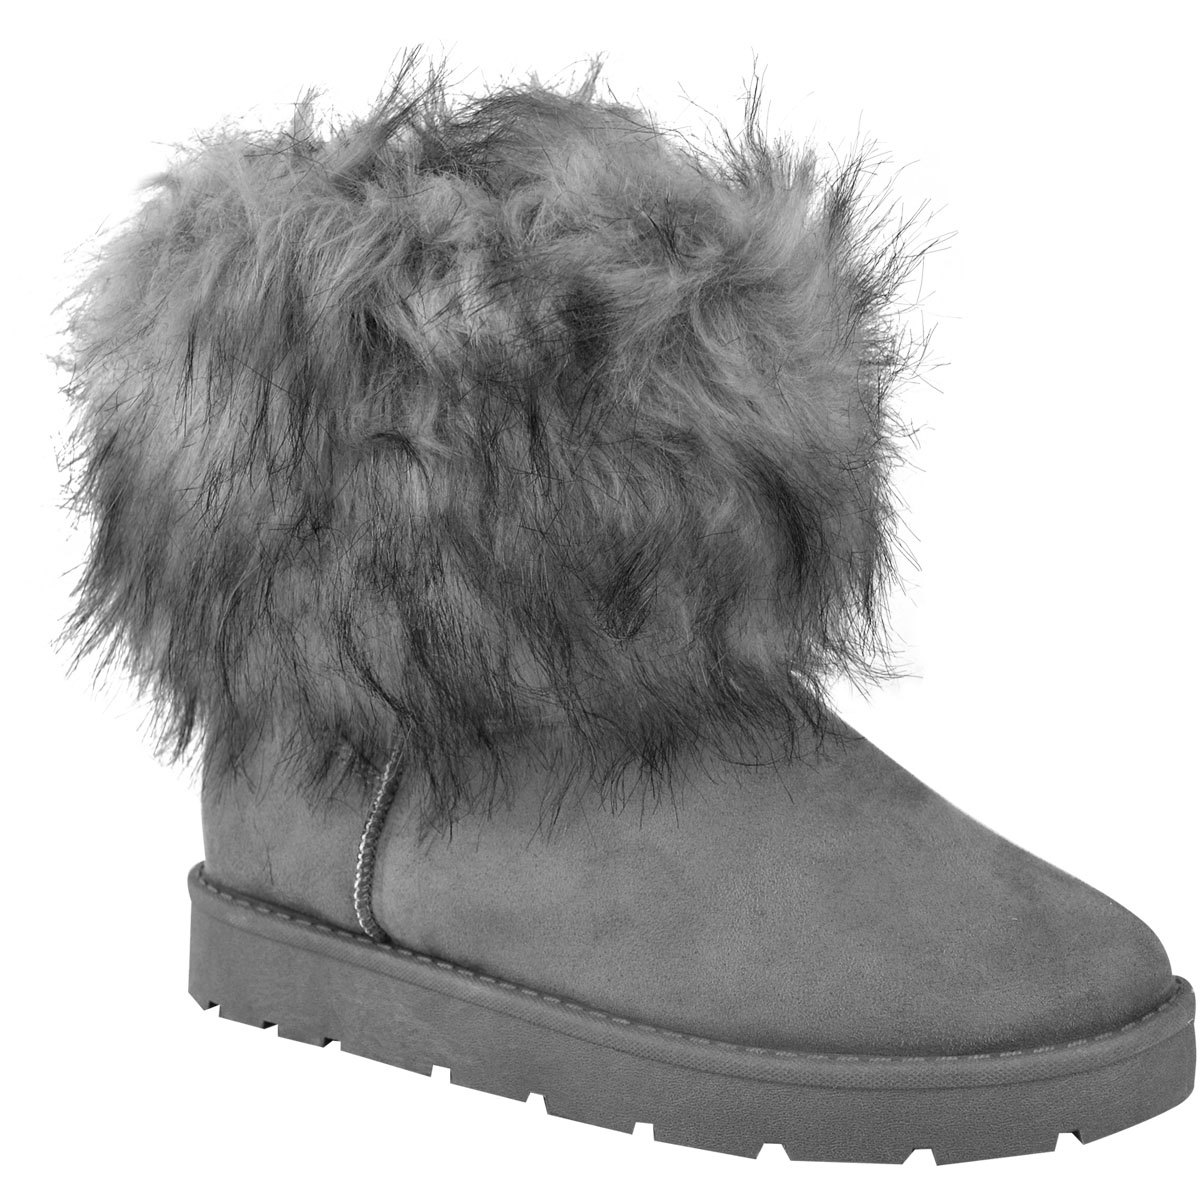 Womens Ladies Flat Faux Fur Fluffy Ankle Boots Winter Warm Comfy Snow Shoes Size